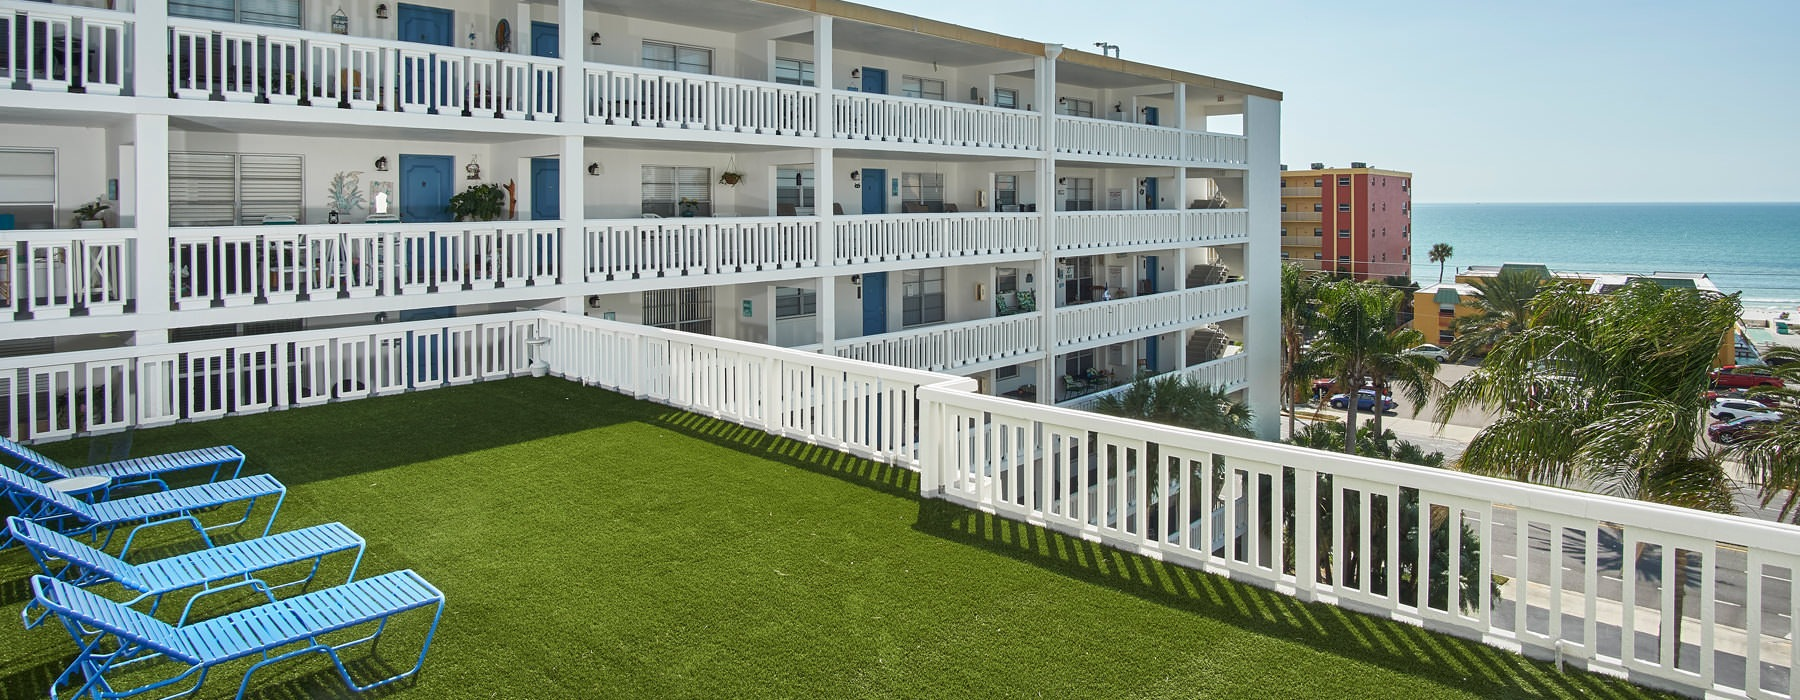 open rooftop deck with grass and lounge chairs with harbor views